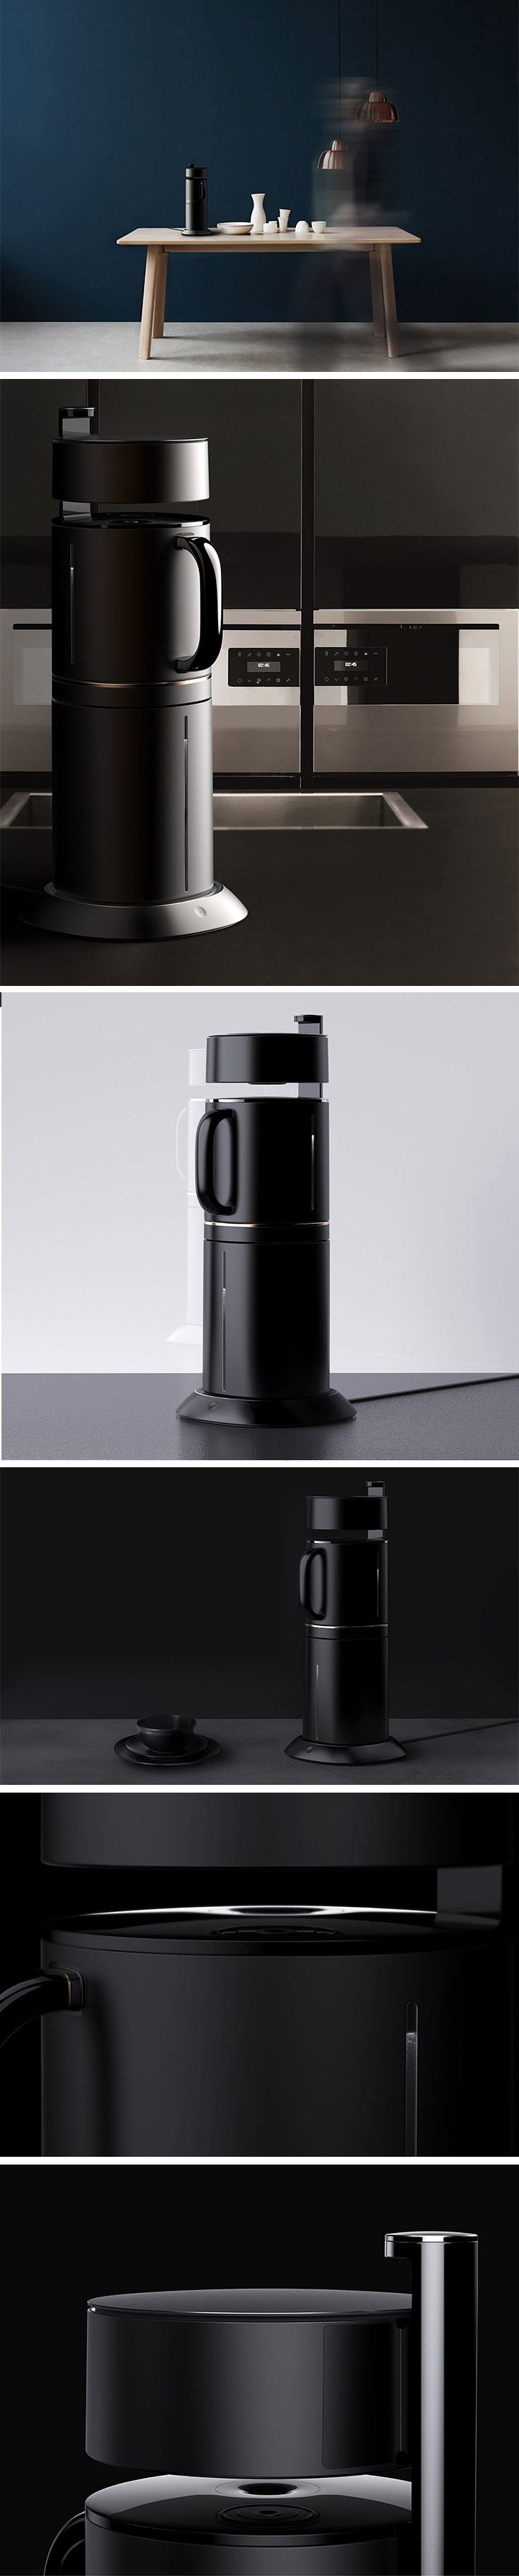 MiO is a taller, slimmer coffee maker compared to today's